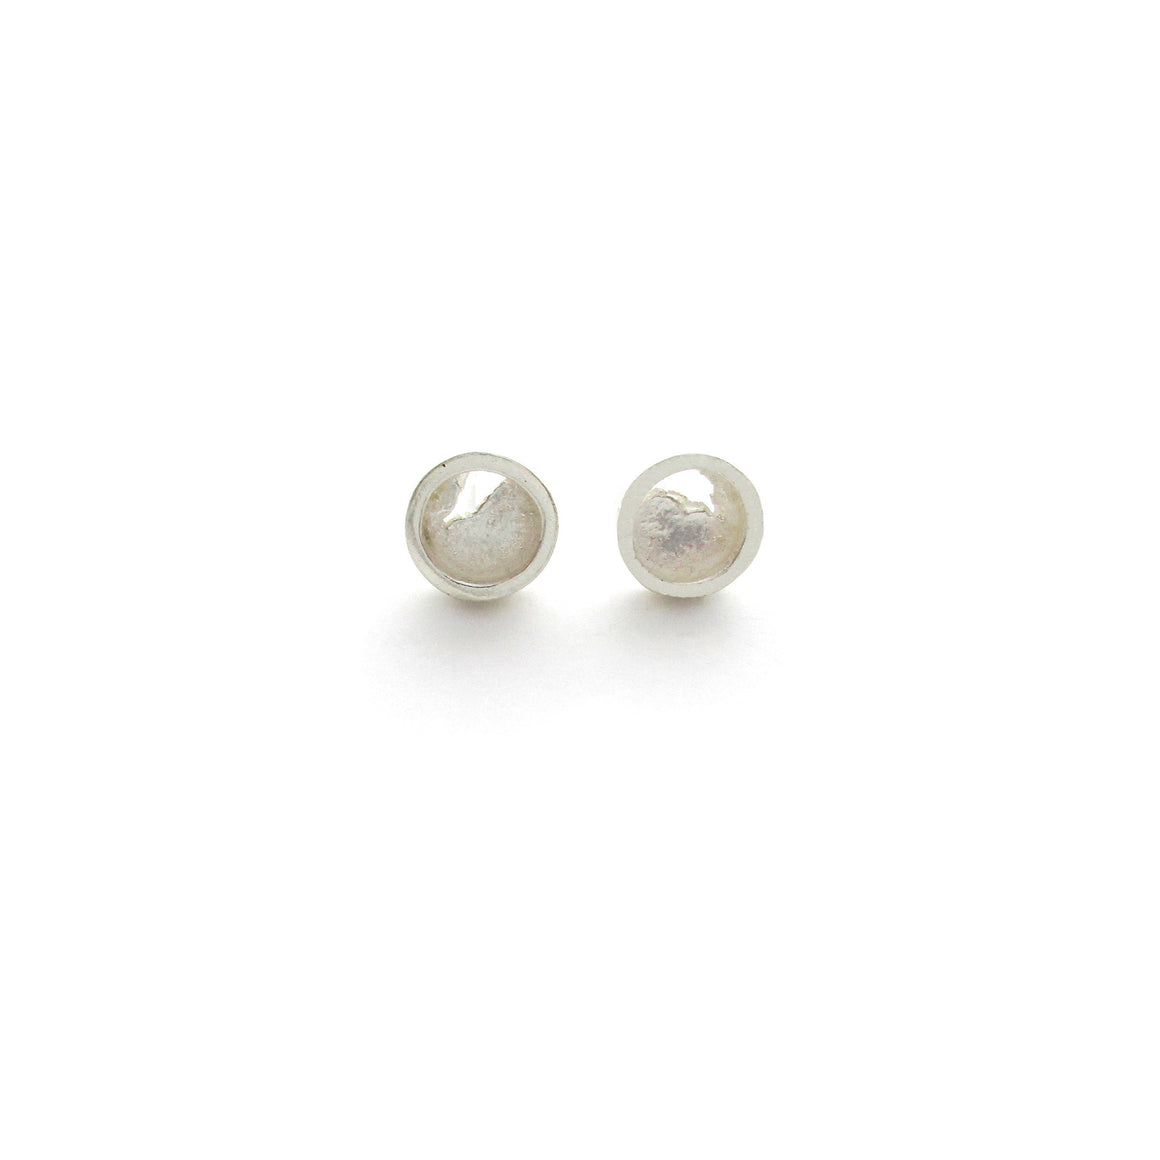 Seth Papac Torn silver stud earrings